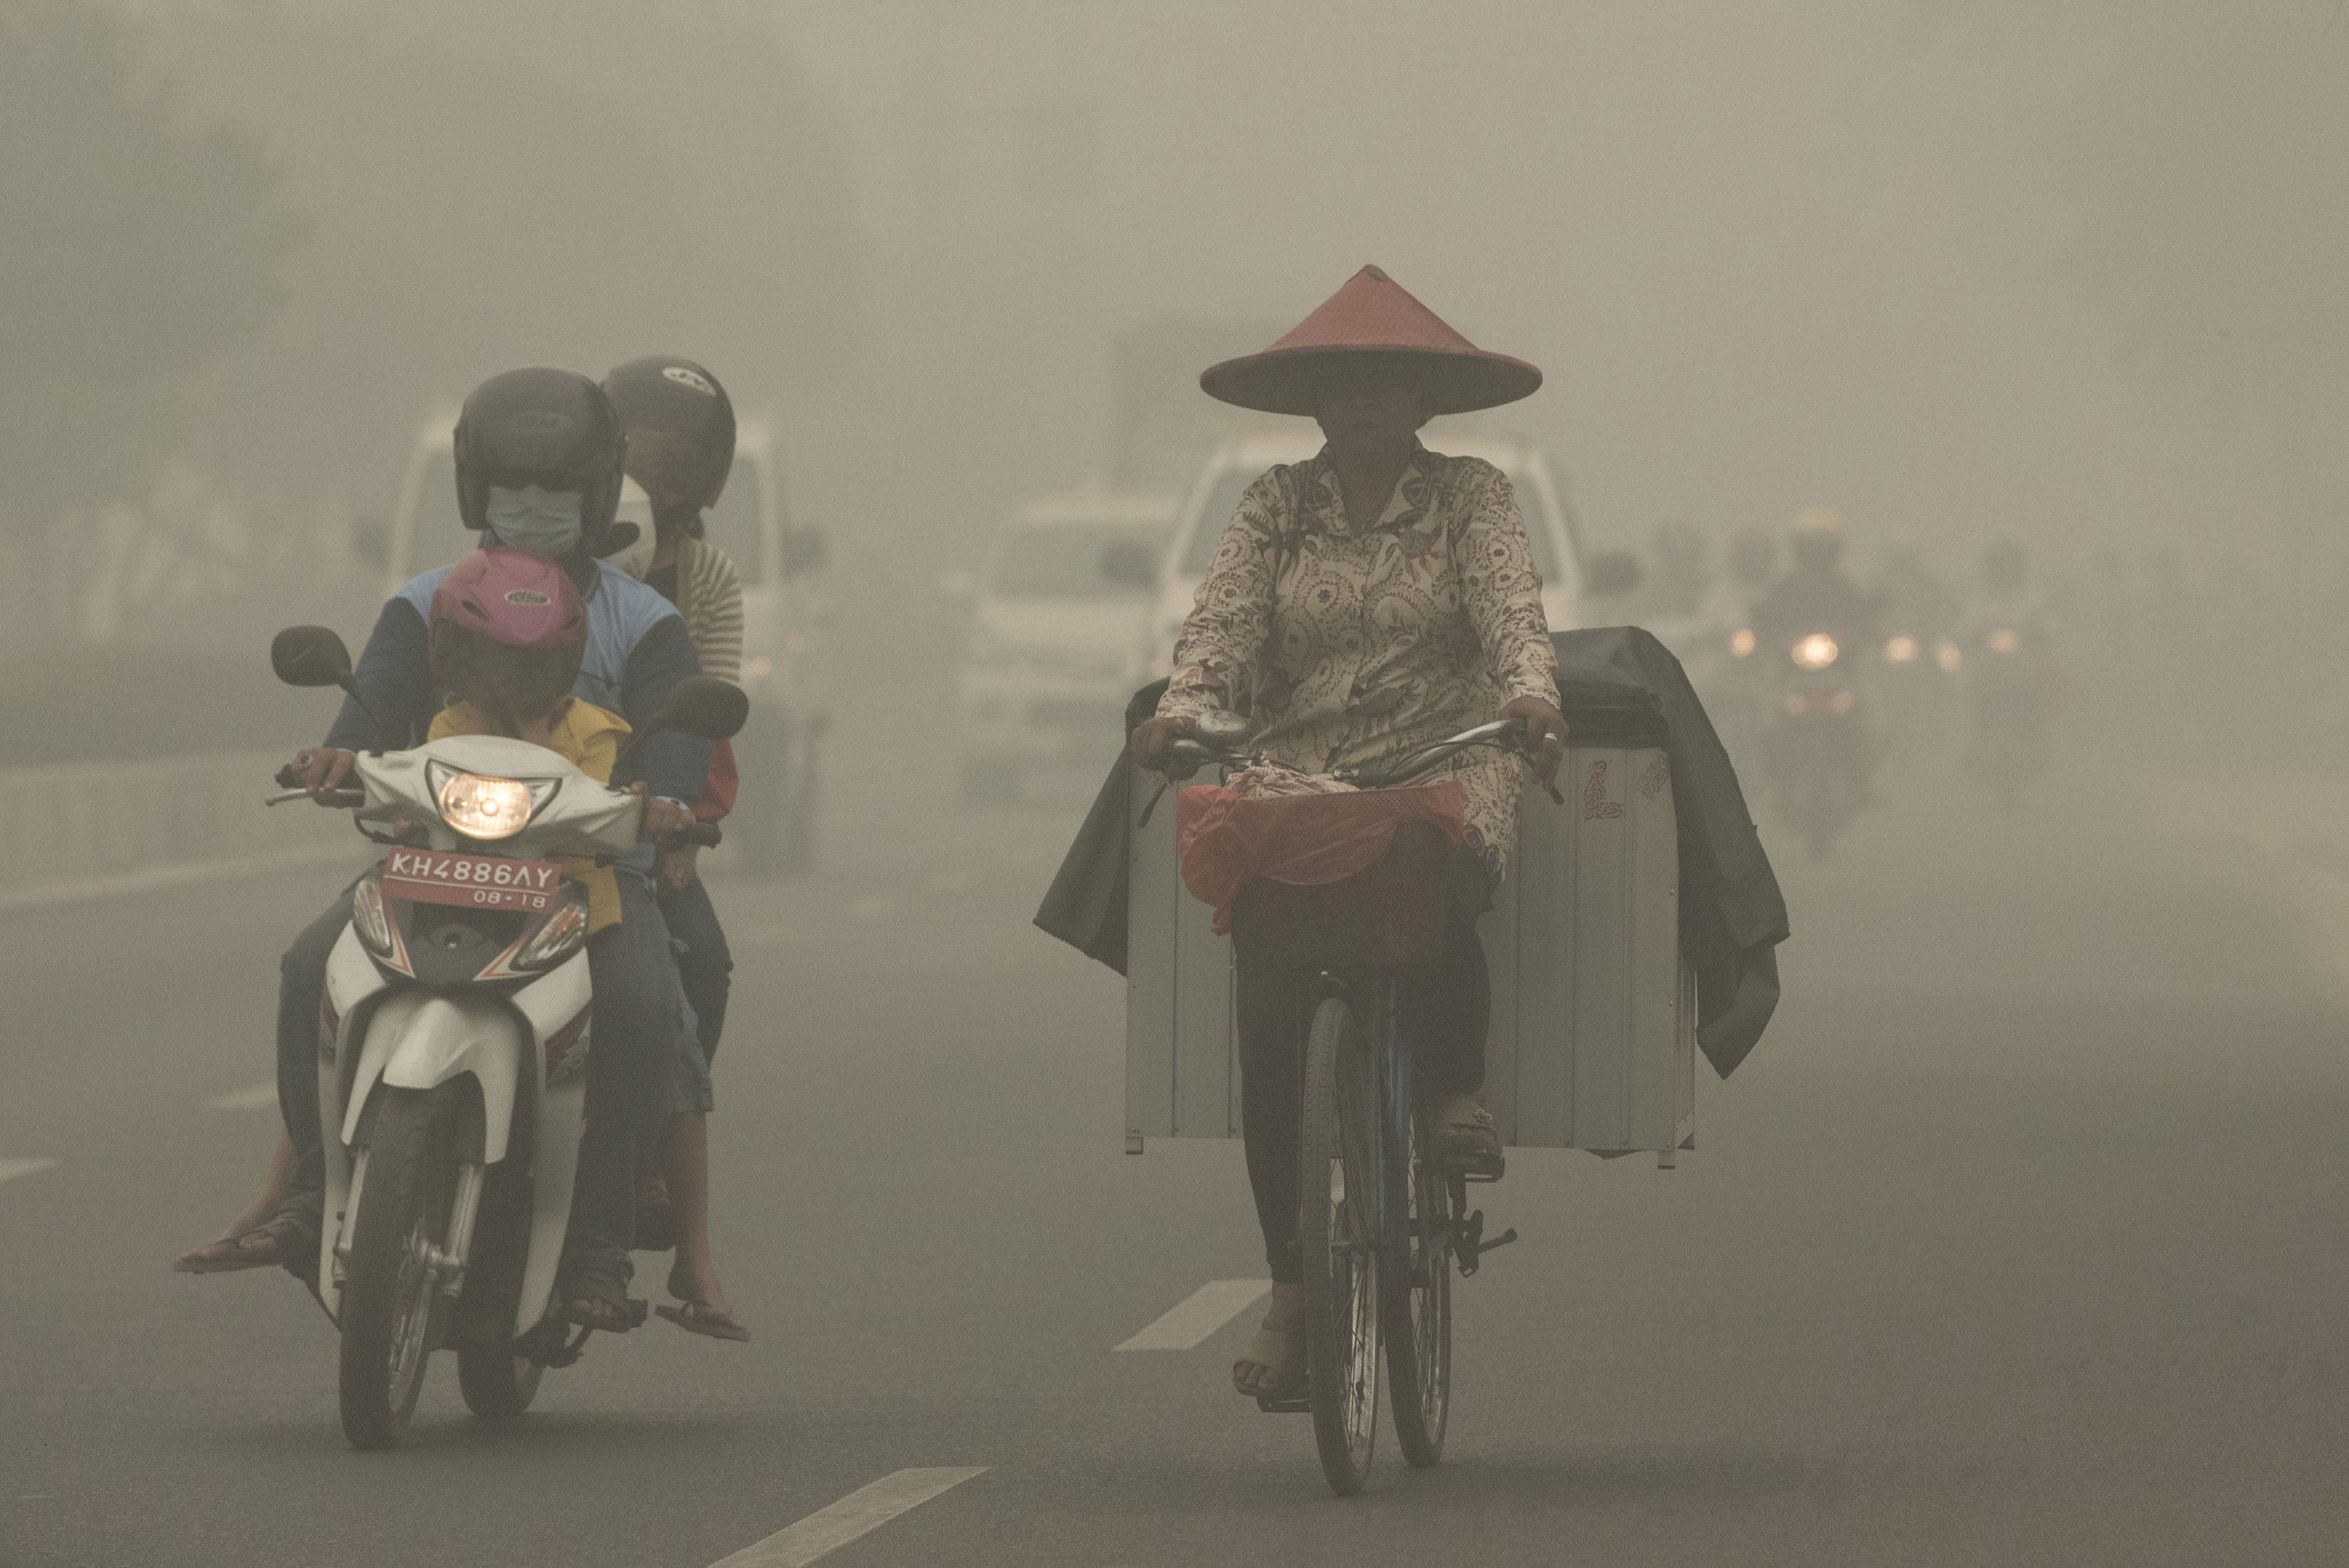 Forest fires in Indonesia have been shrouding parts of Southeast Asia in haze for weeks. [Rosa Panggabean/Antara Foto/Reuters]